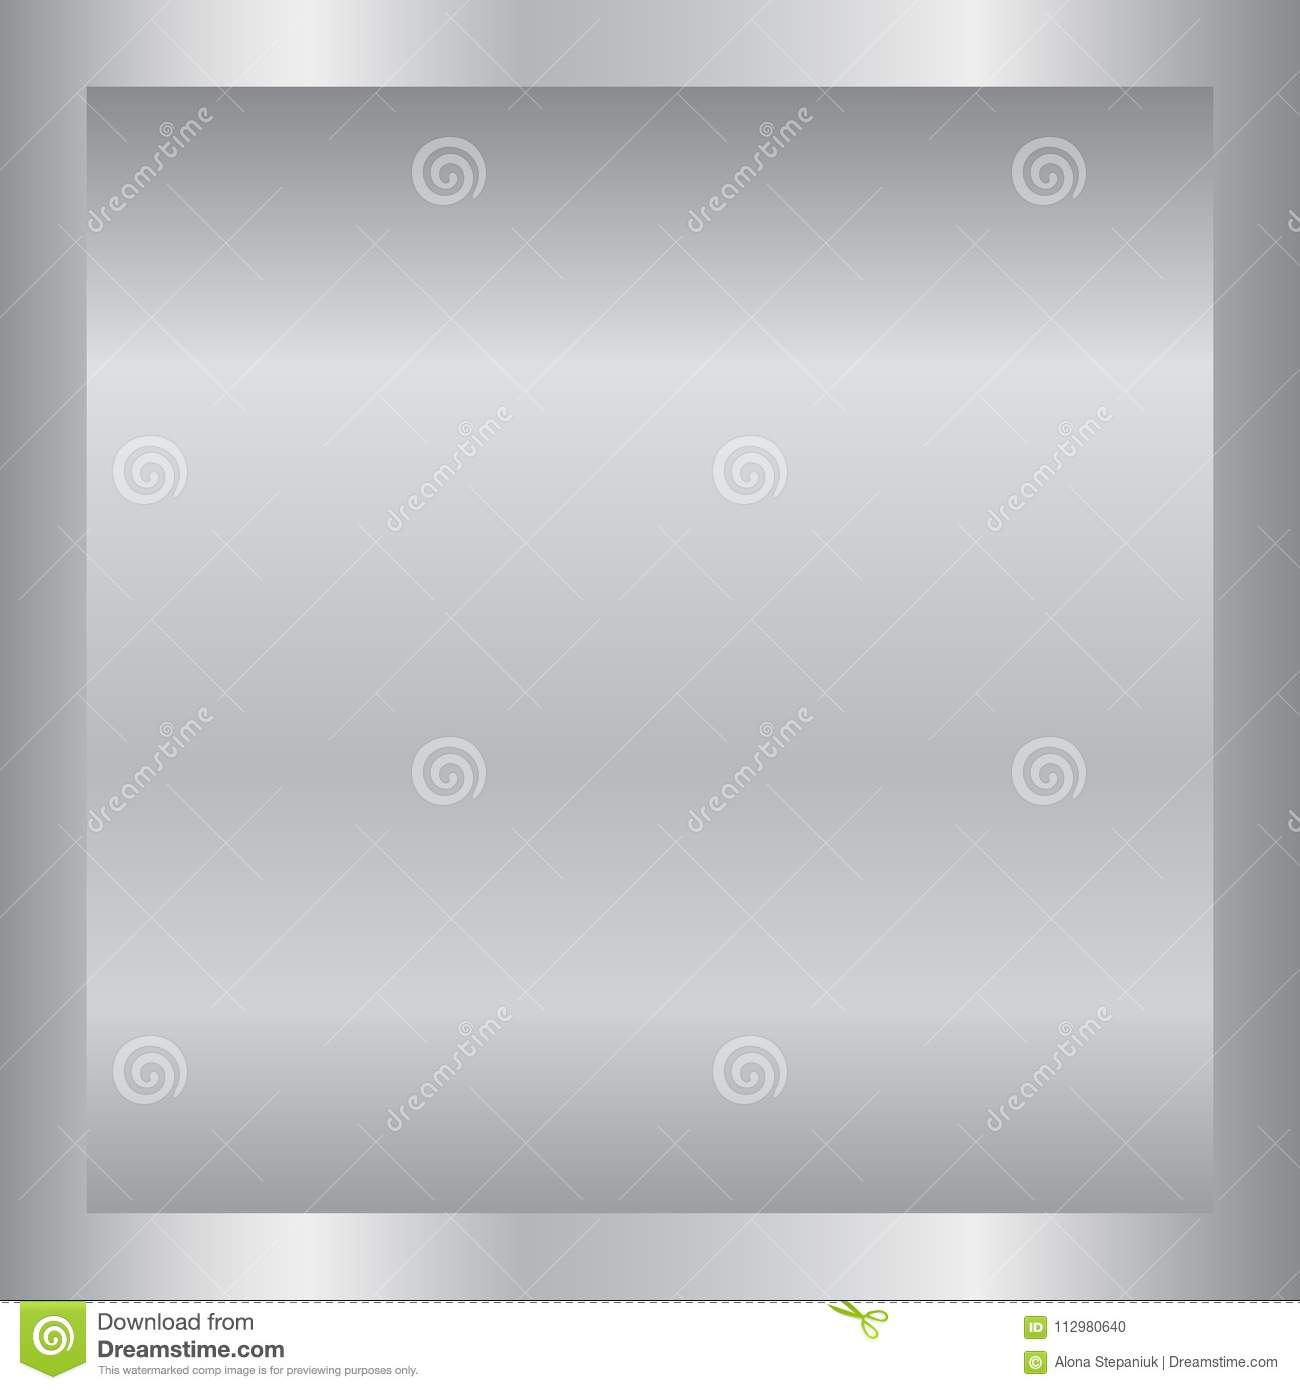 Silver gradient background. Silver design texture for ribbon, frame, banner. Abstract silver gradient template. Metal